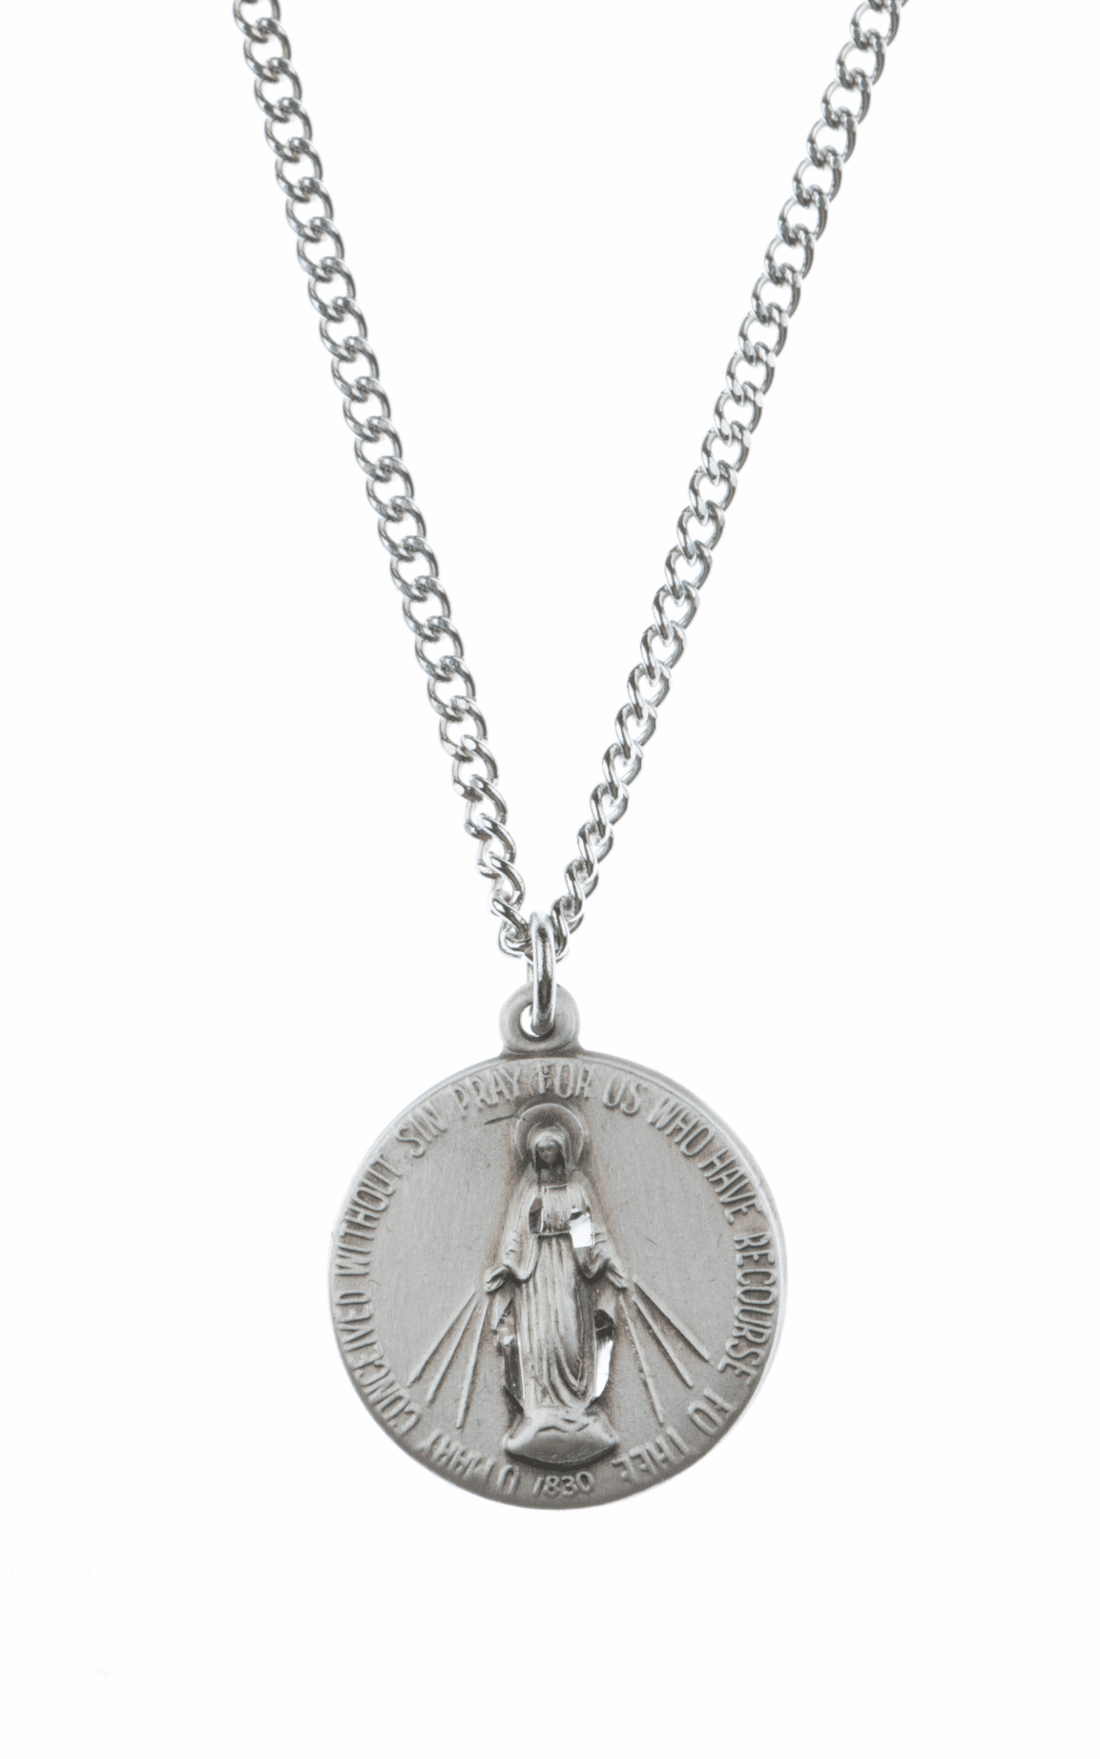 Jeweled Cross Miraculous Medals & Jewelry